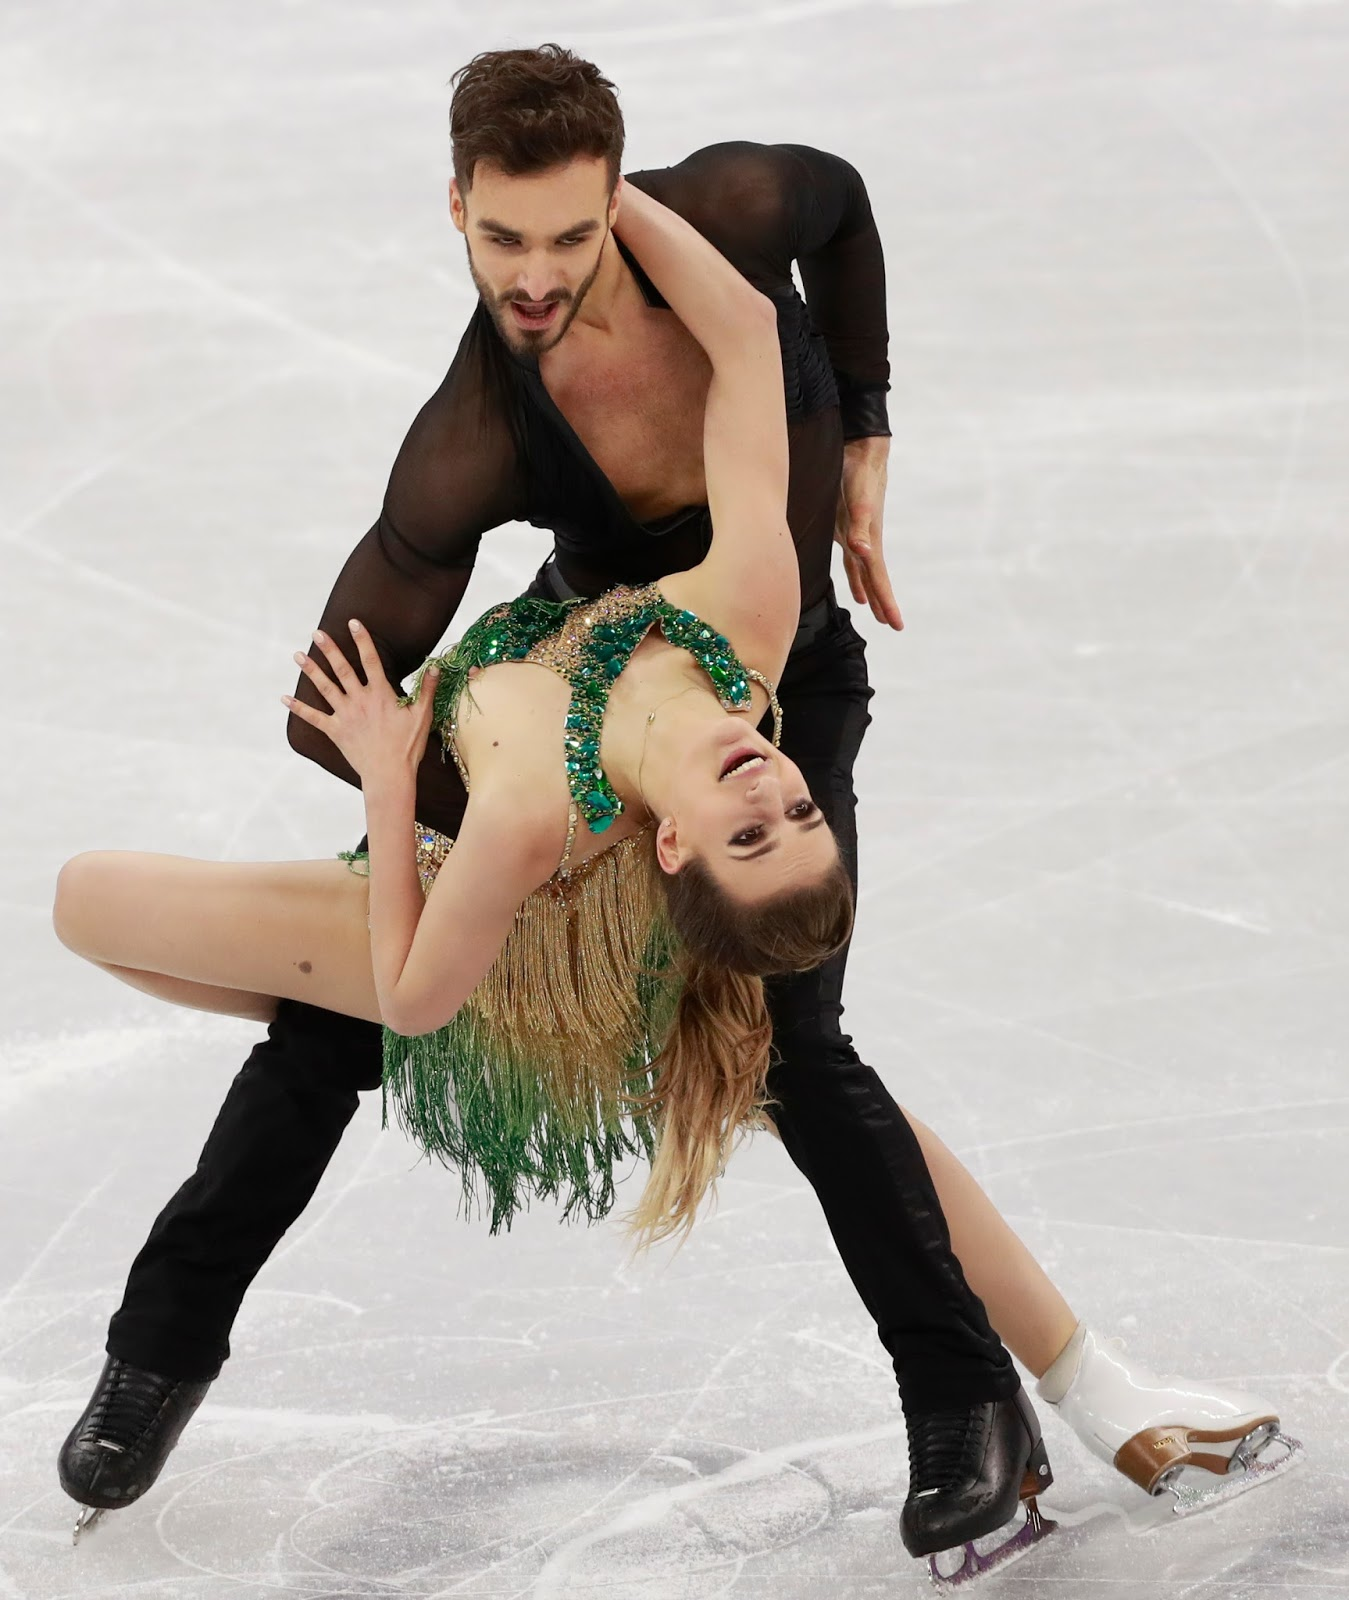 Olympic Curling Medalist From Russia Busted For Doping; Wardrobe Malfunction Leaves French Ice Dancer Exposed.